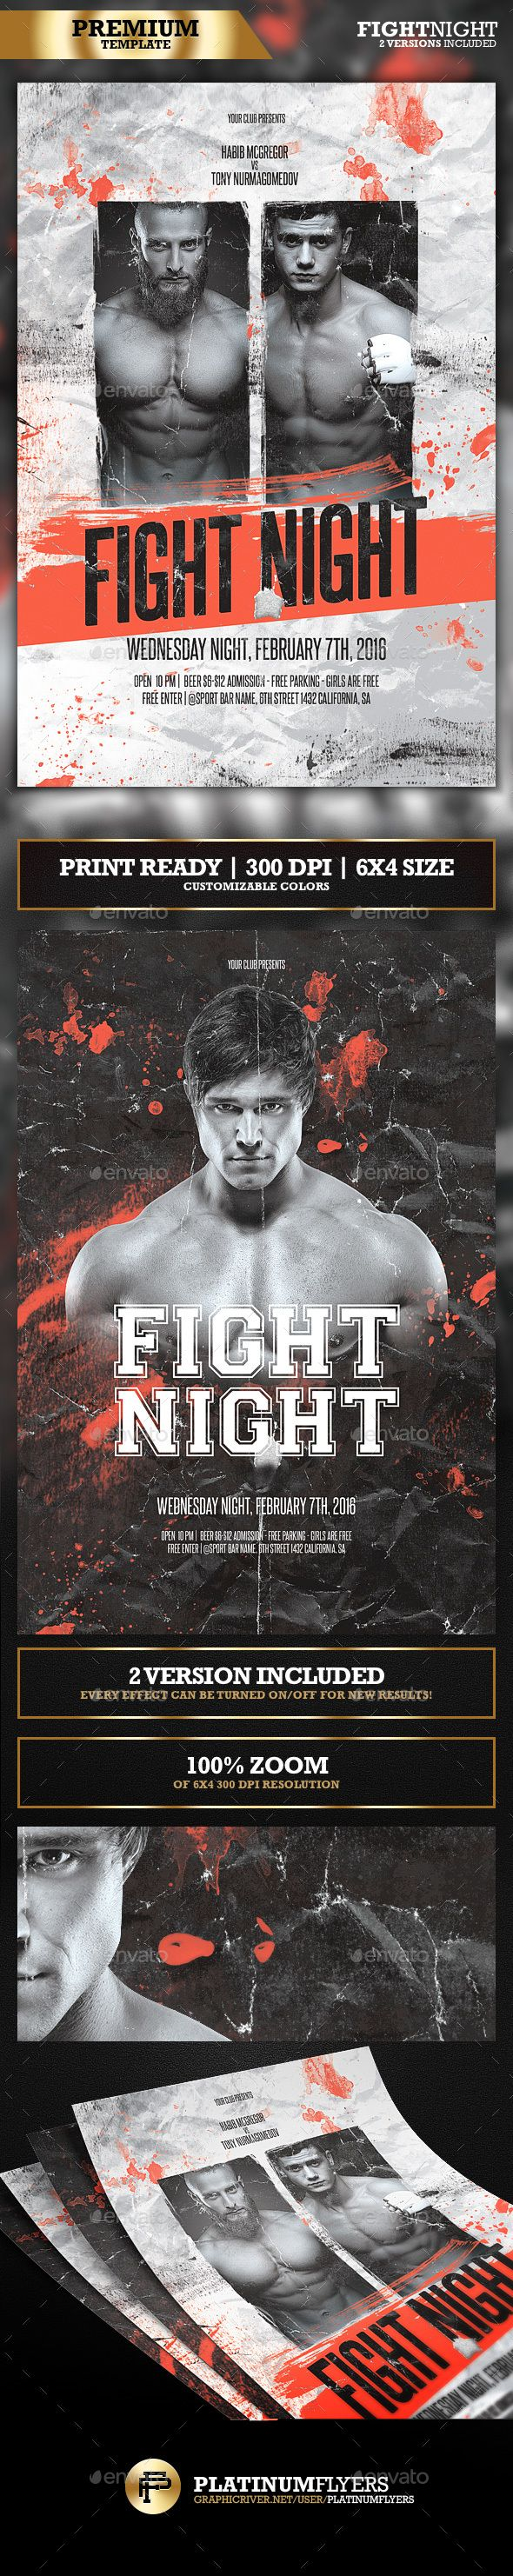 Mma  Fight Night  Boxing Fight Flyer  Ufc  Boxing Fight Fight